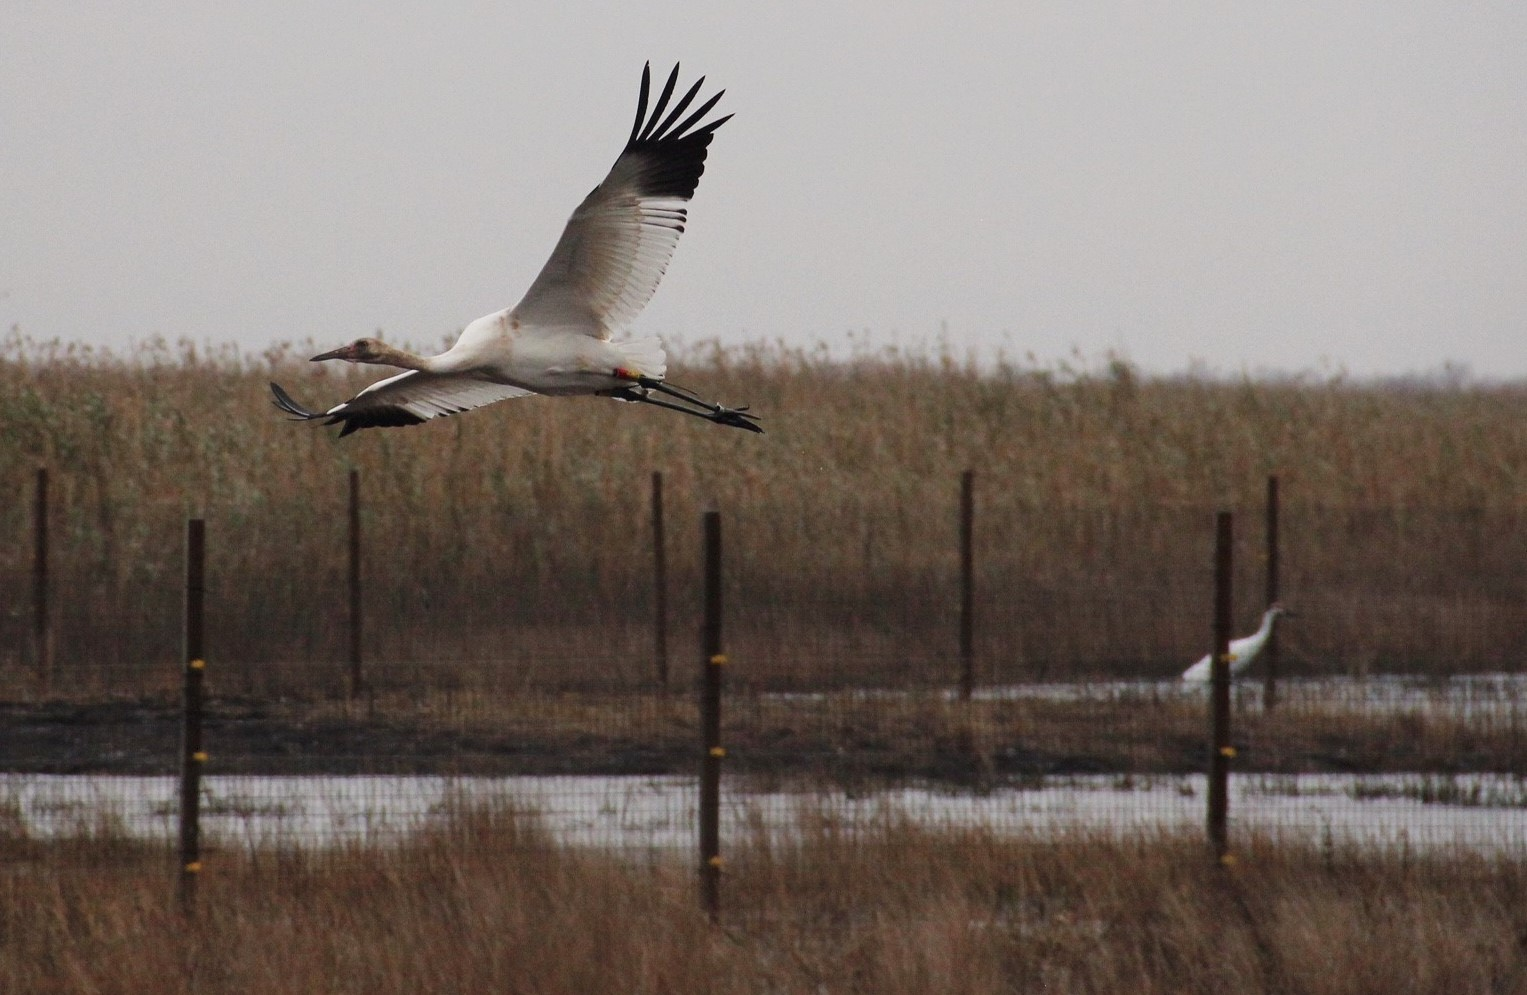 Whooping Crane pens at White Lake Conservation Area. Photo: Karen Westphal, Audubon Louisiana.